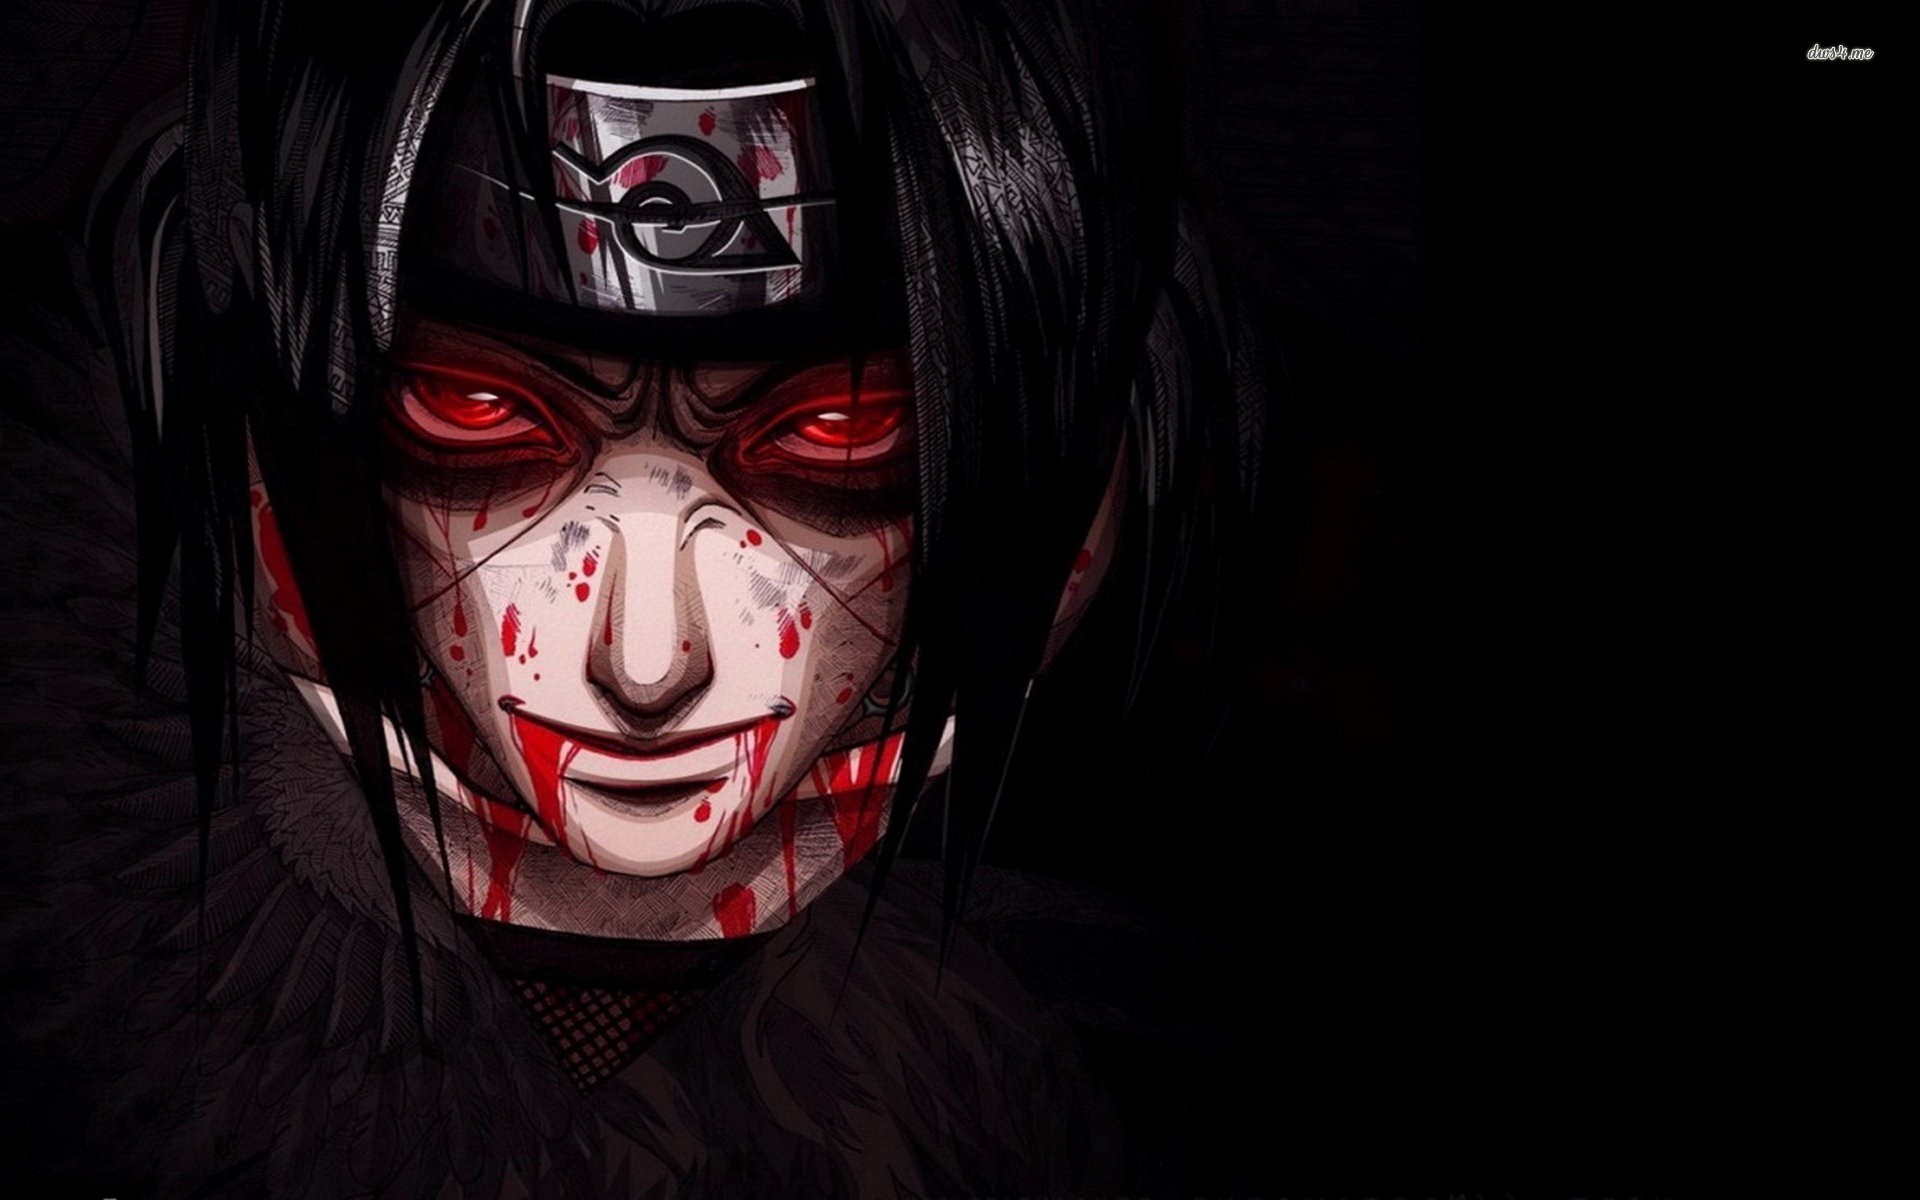 Itachi Uchiha Wallpaper ·① Download Free Awesome